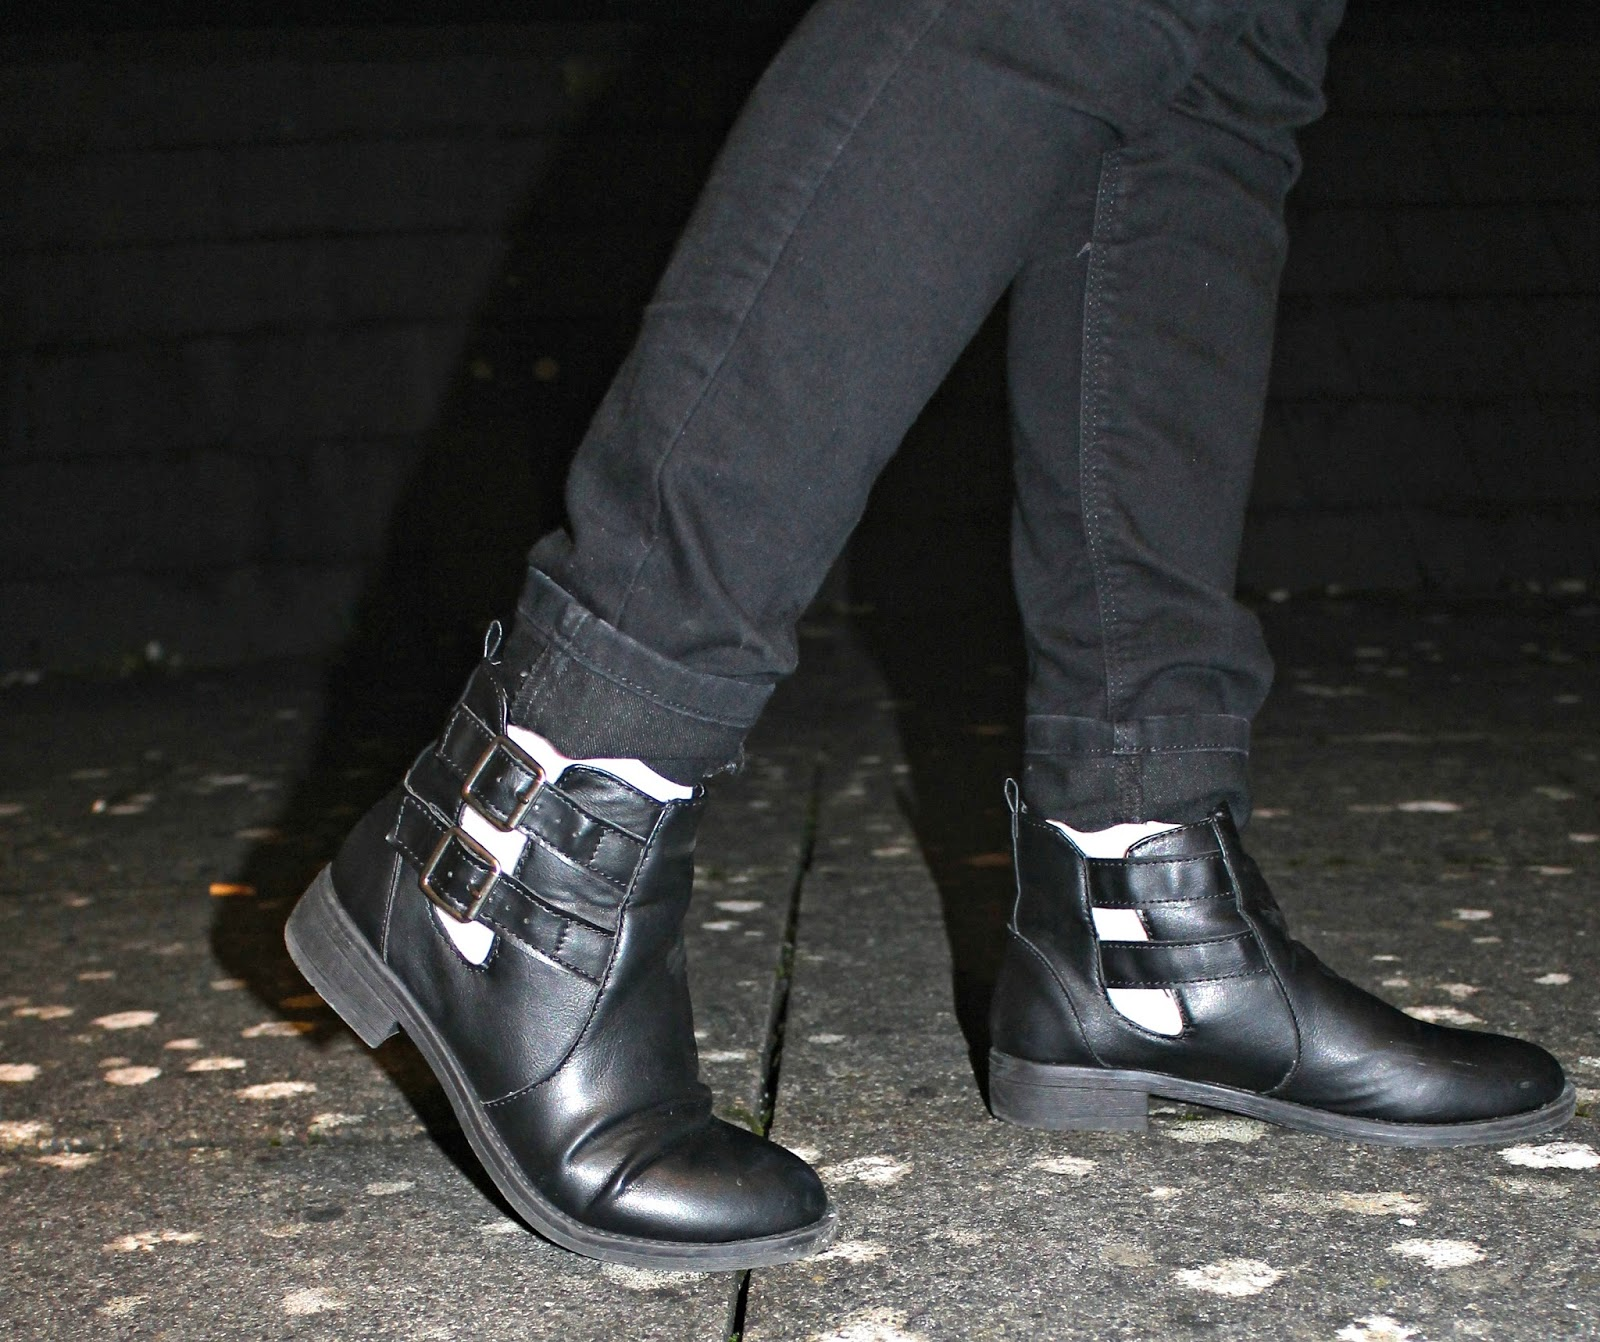 Bec boop cut out ankle boots